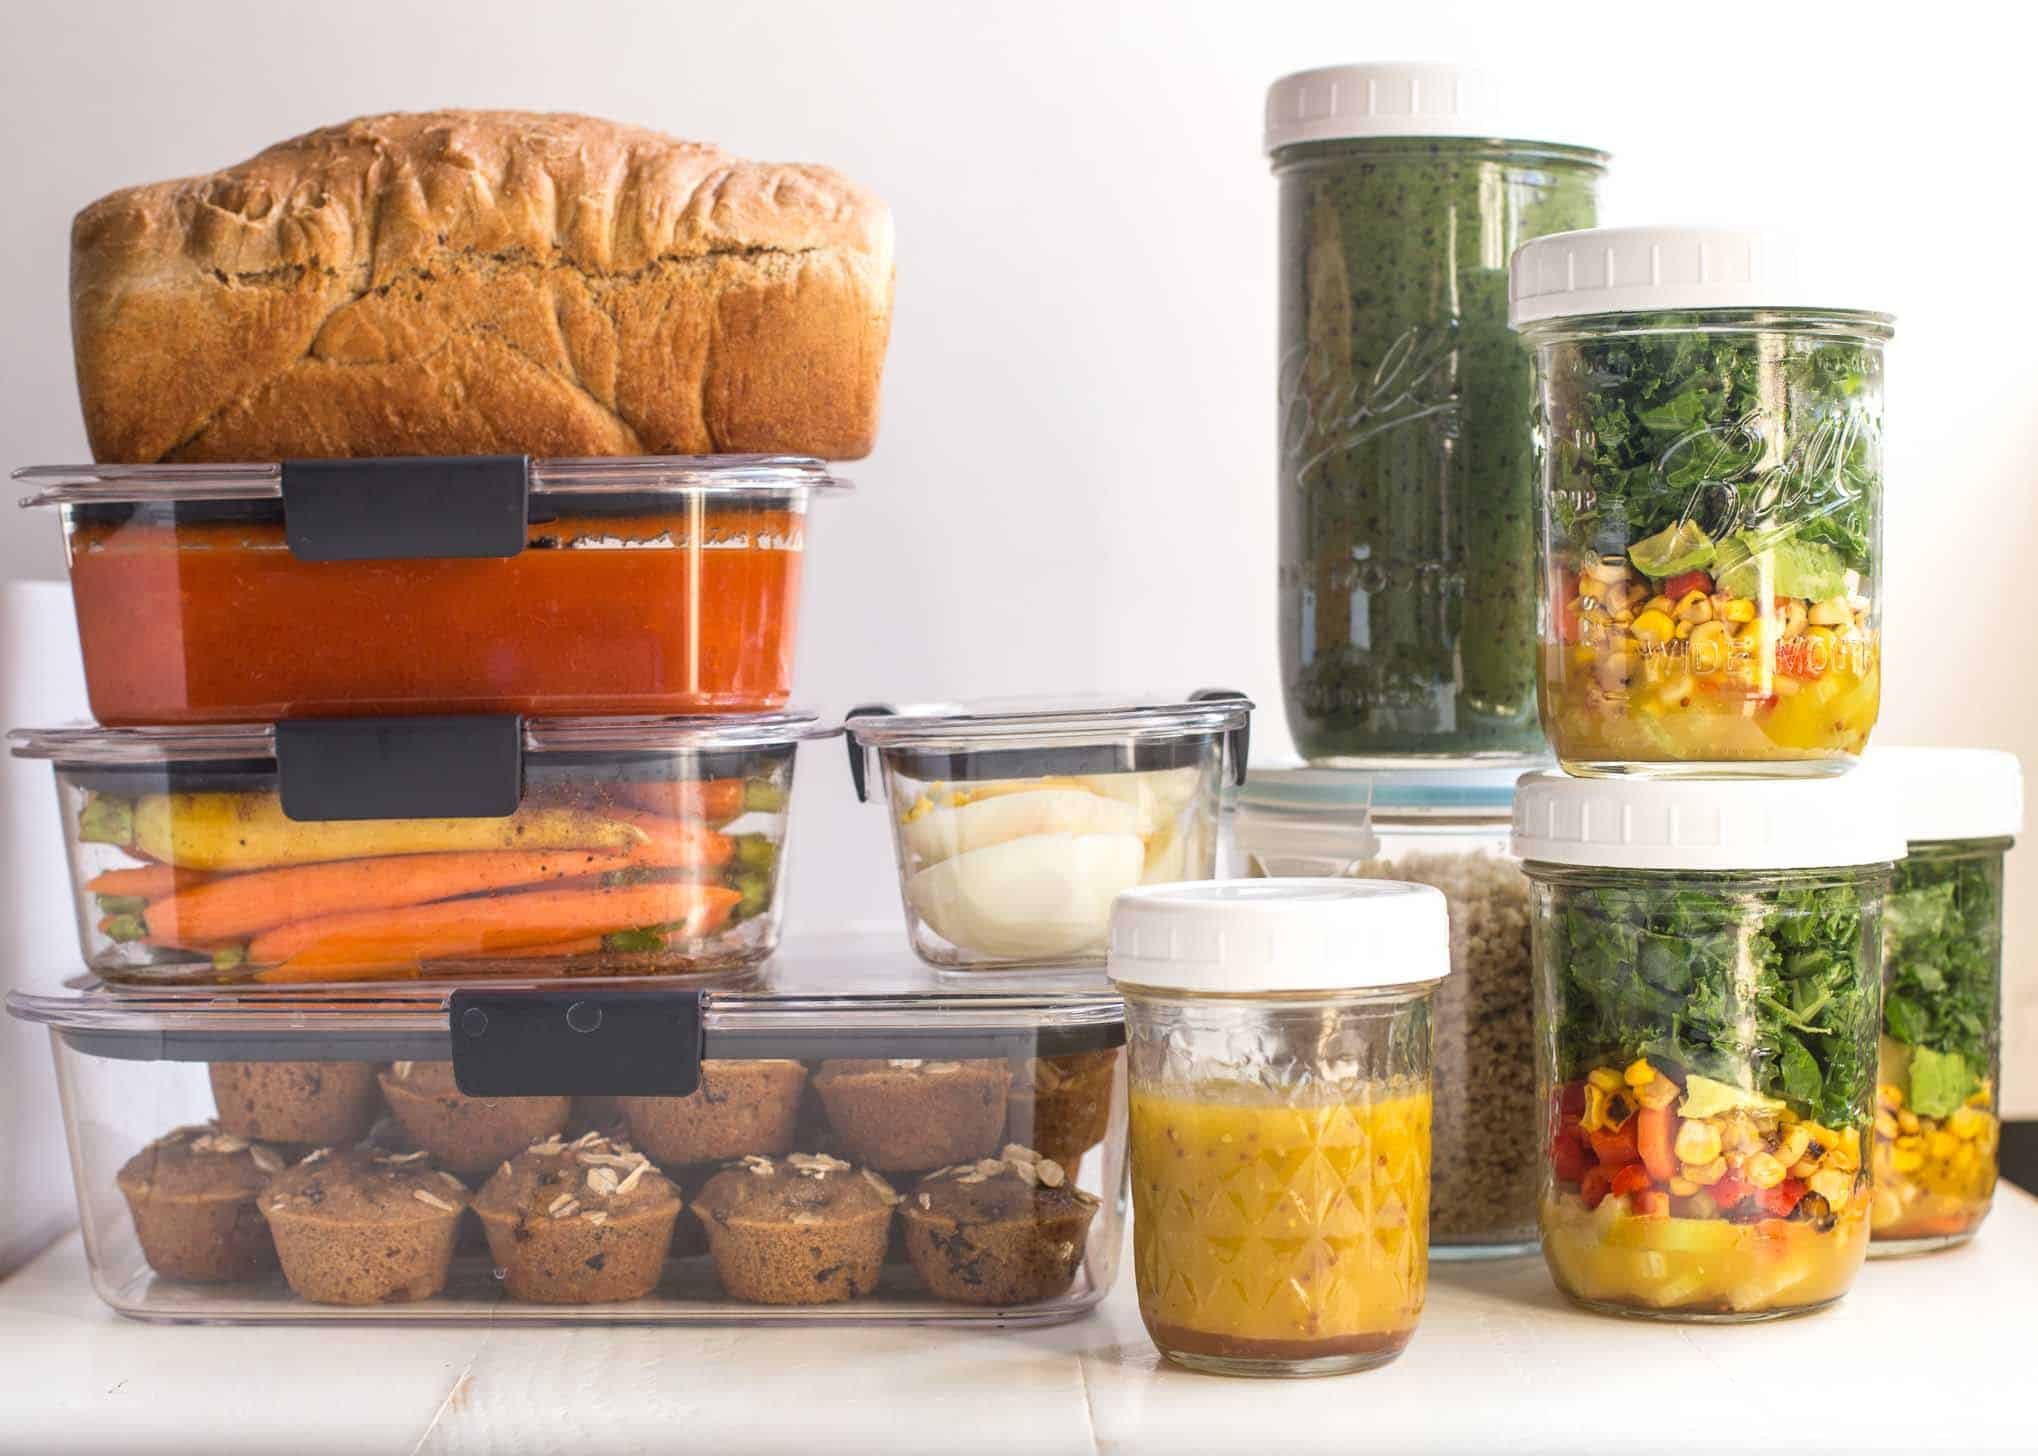 meals prepped in containers on a white table